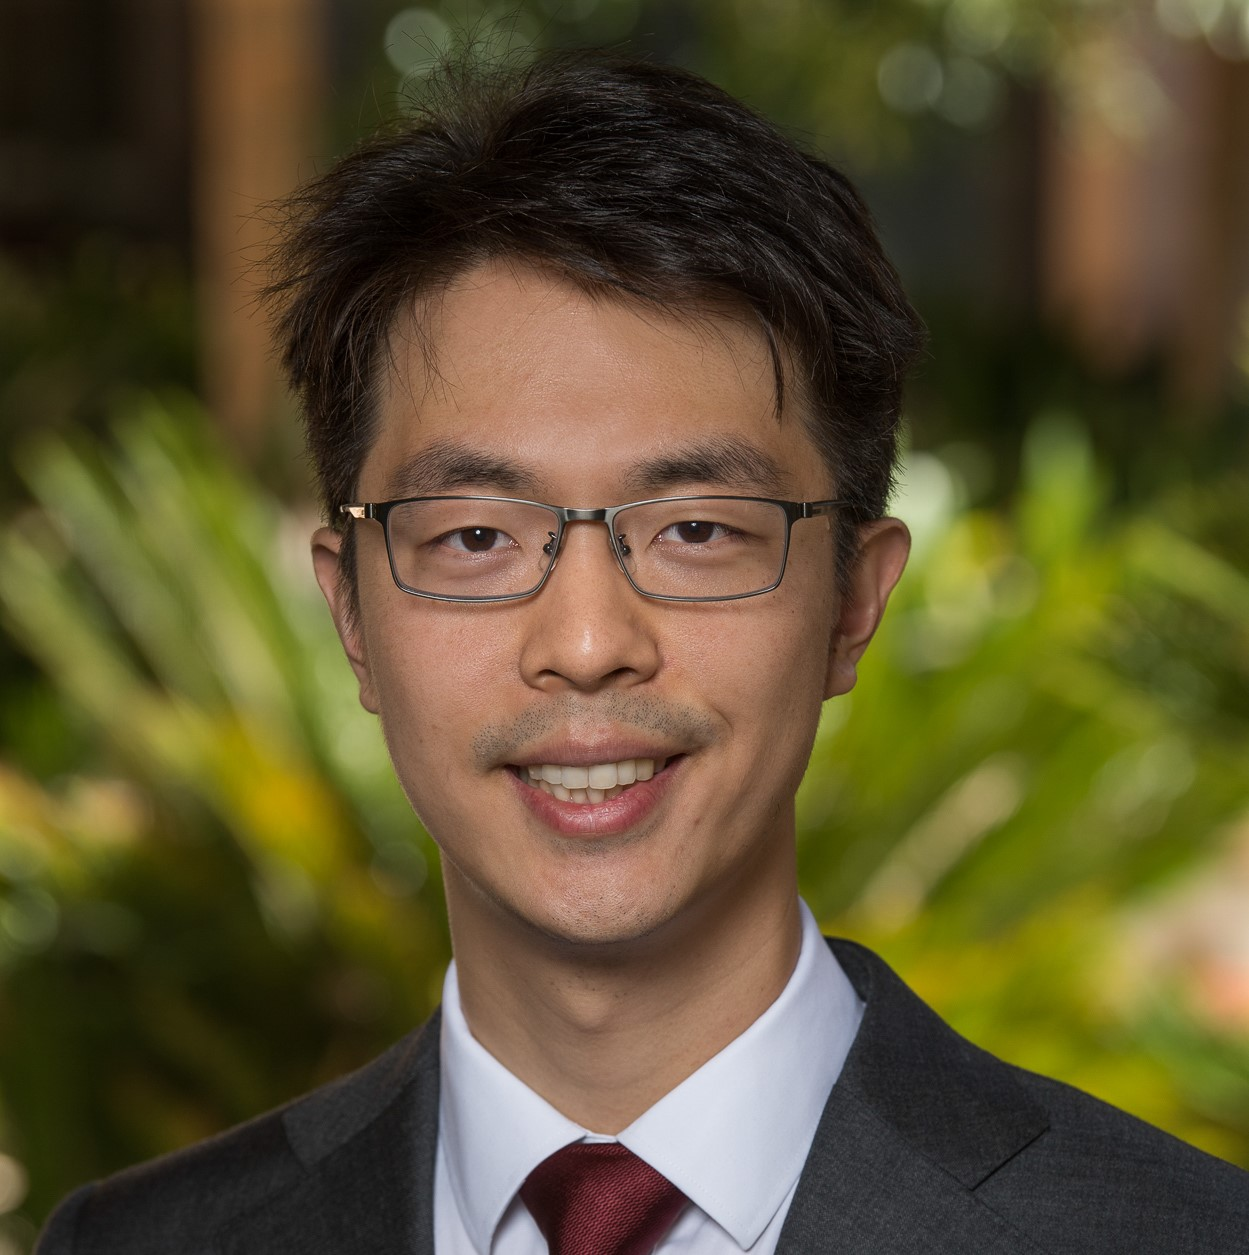 Profile picture of Anthony Lee Zhang